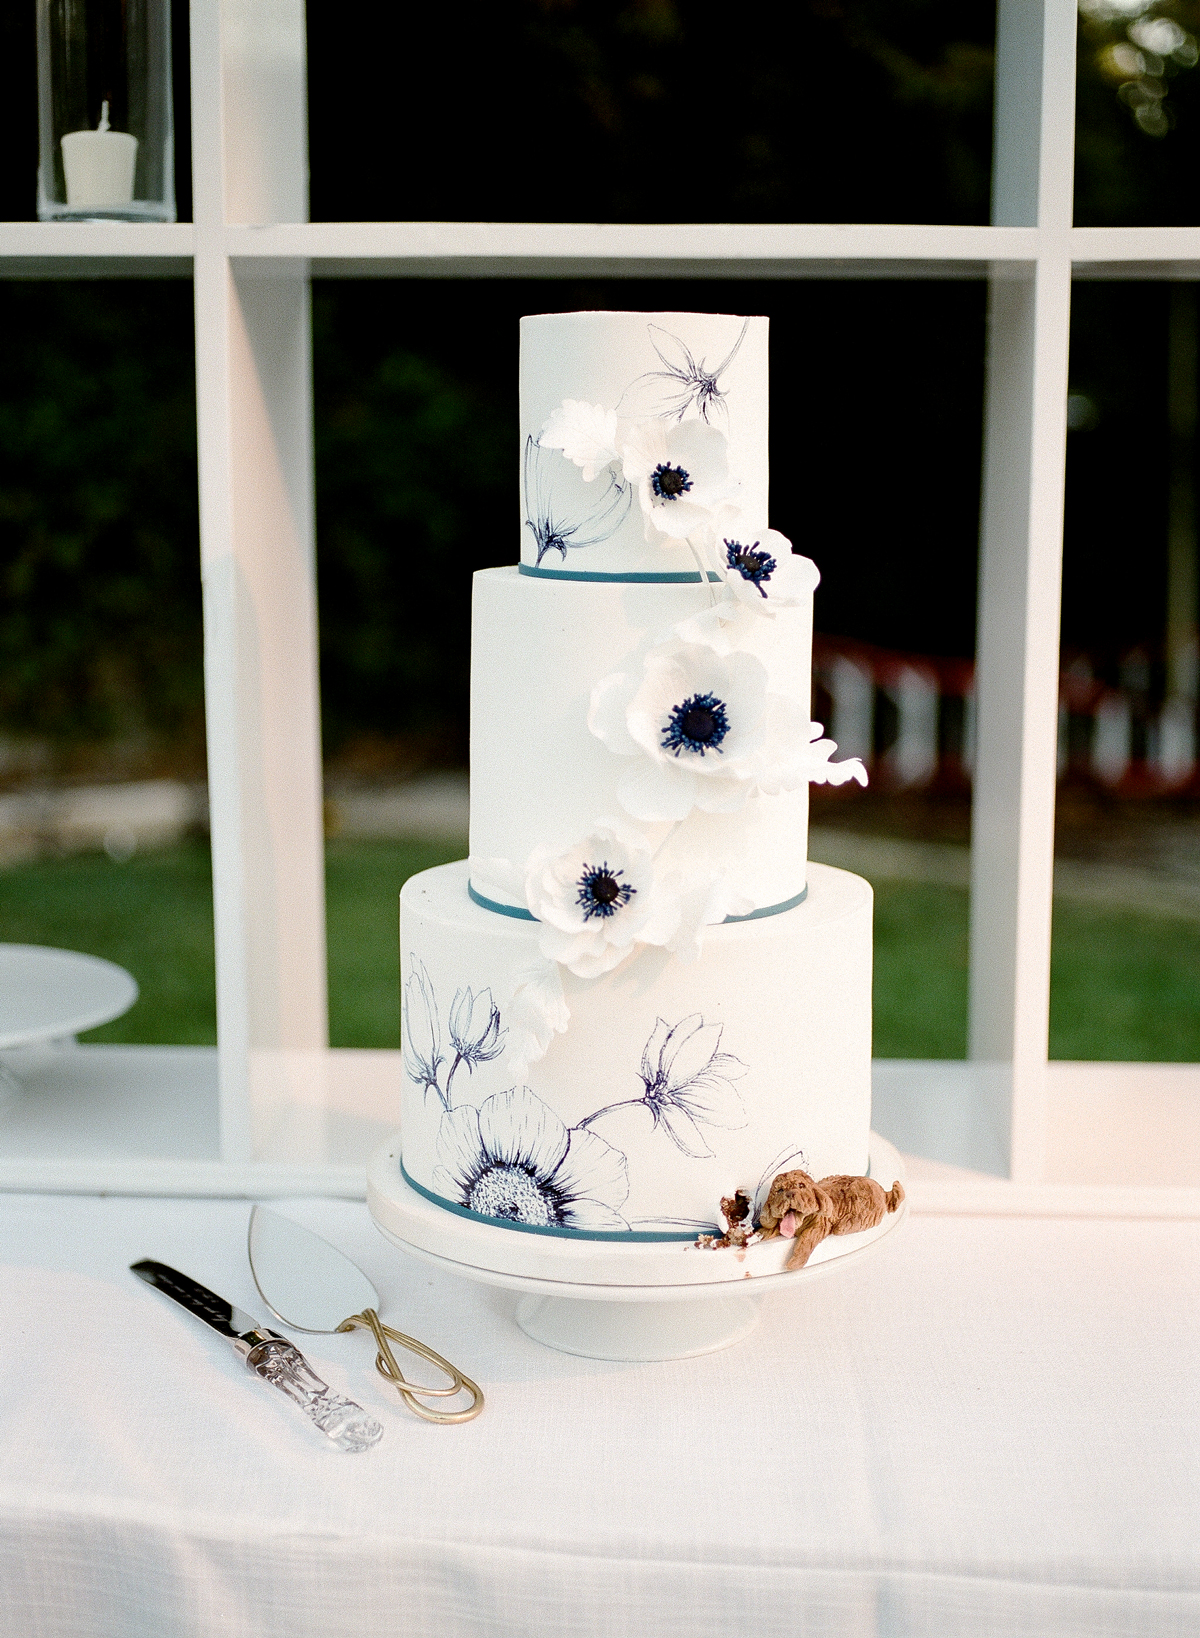 three tiered white frosted cake with custom cosmo flower illustrations